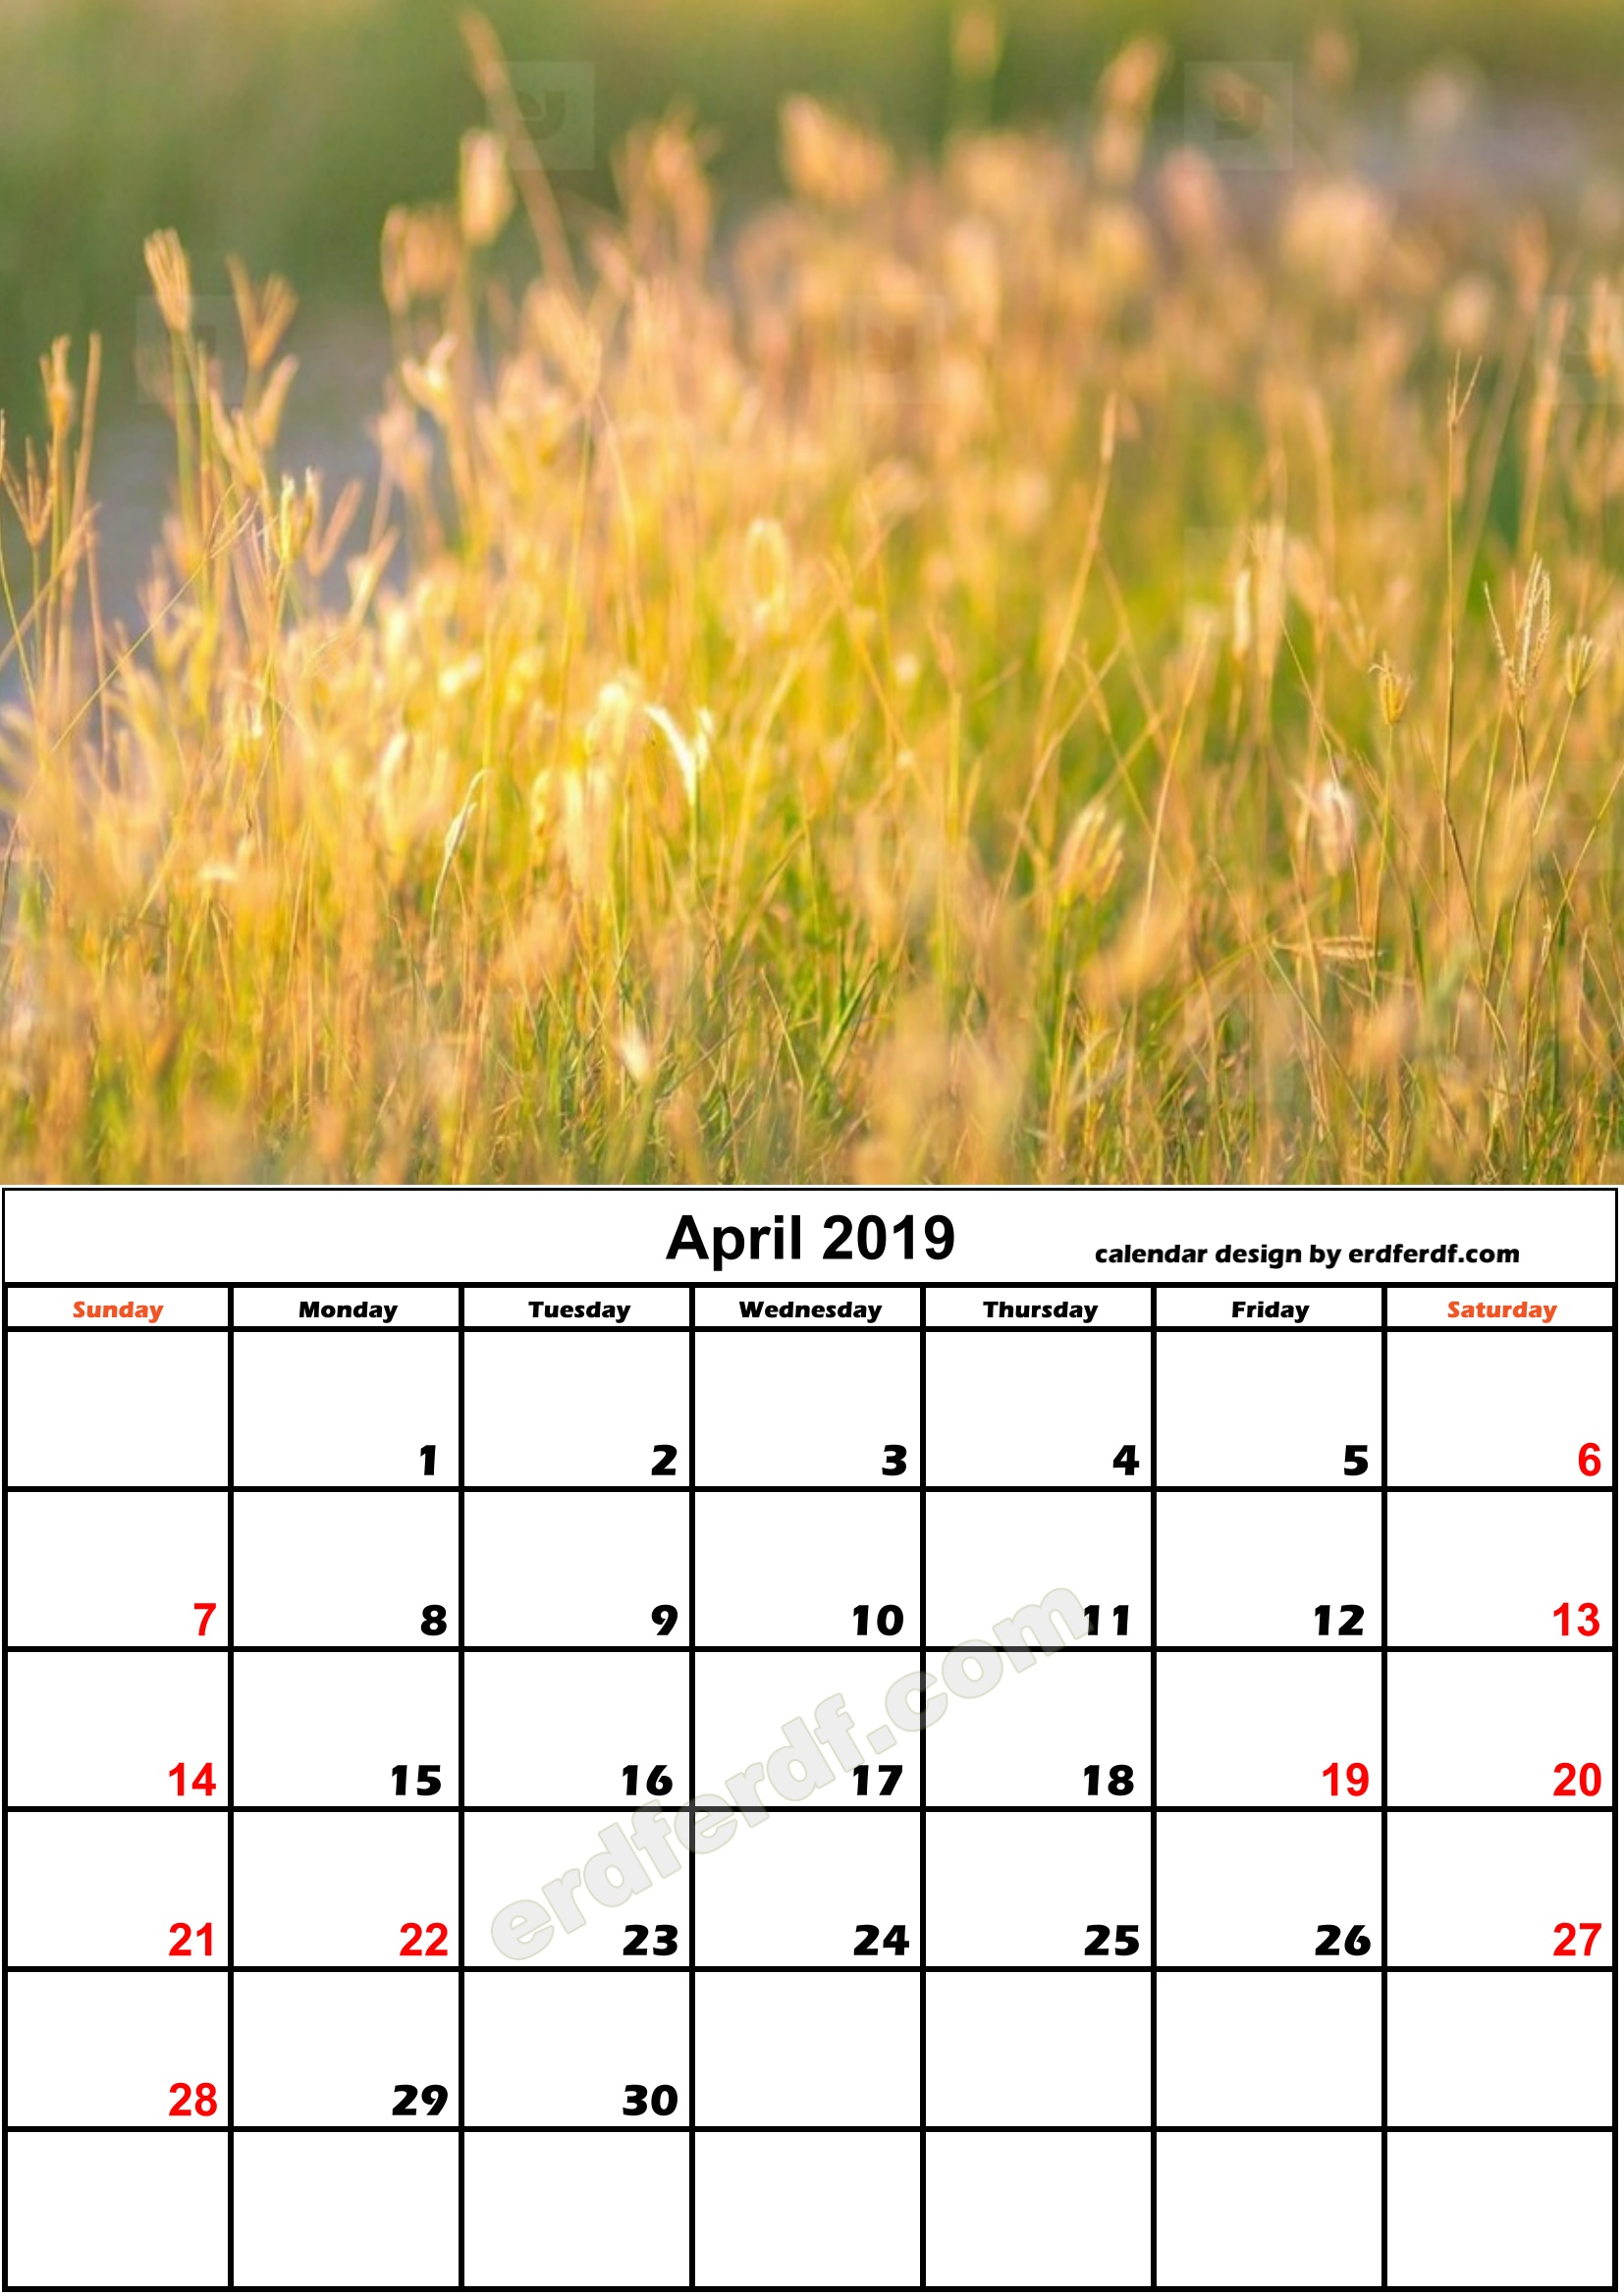 4 April Nature Calendar Monthly 2019 Free Download